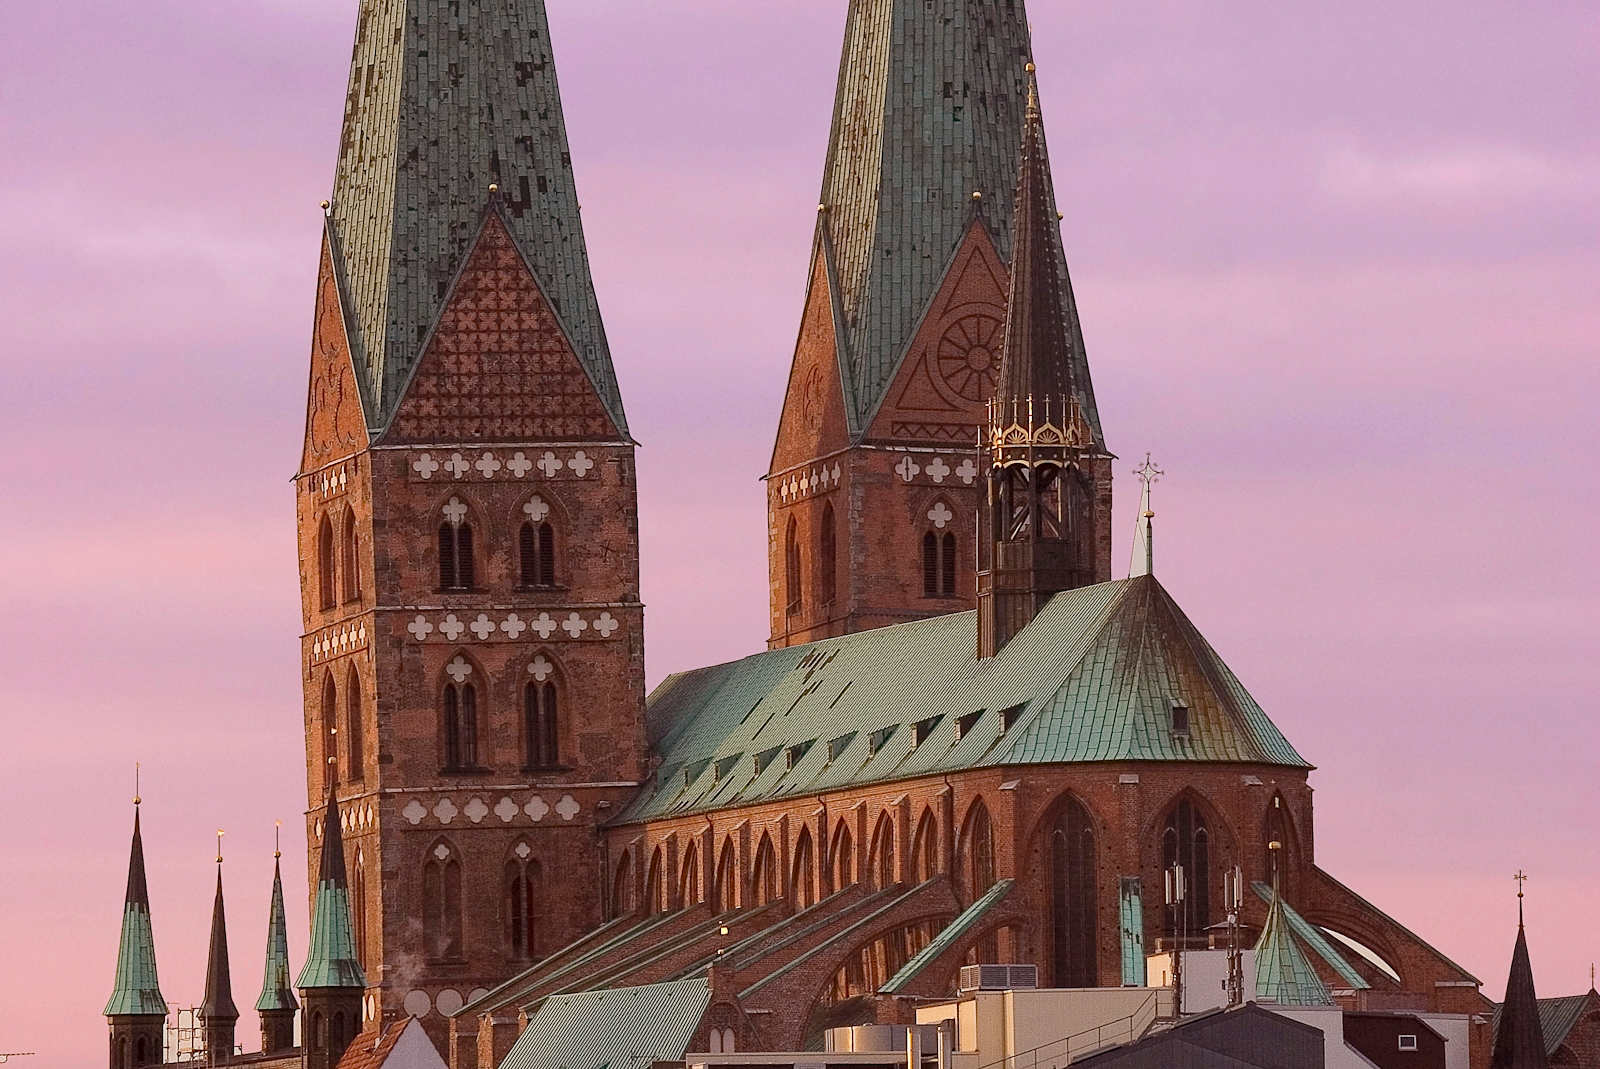 St. Mary's Church, Lübeck